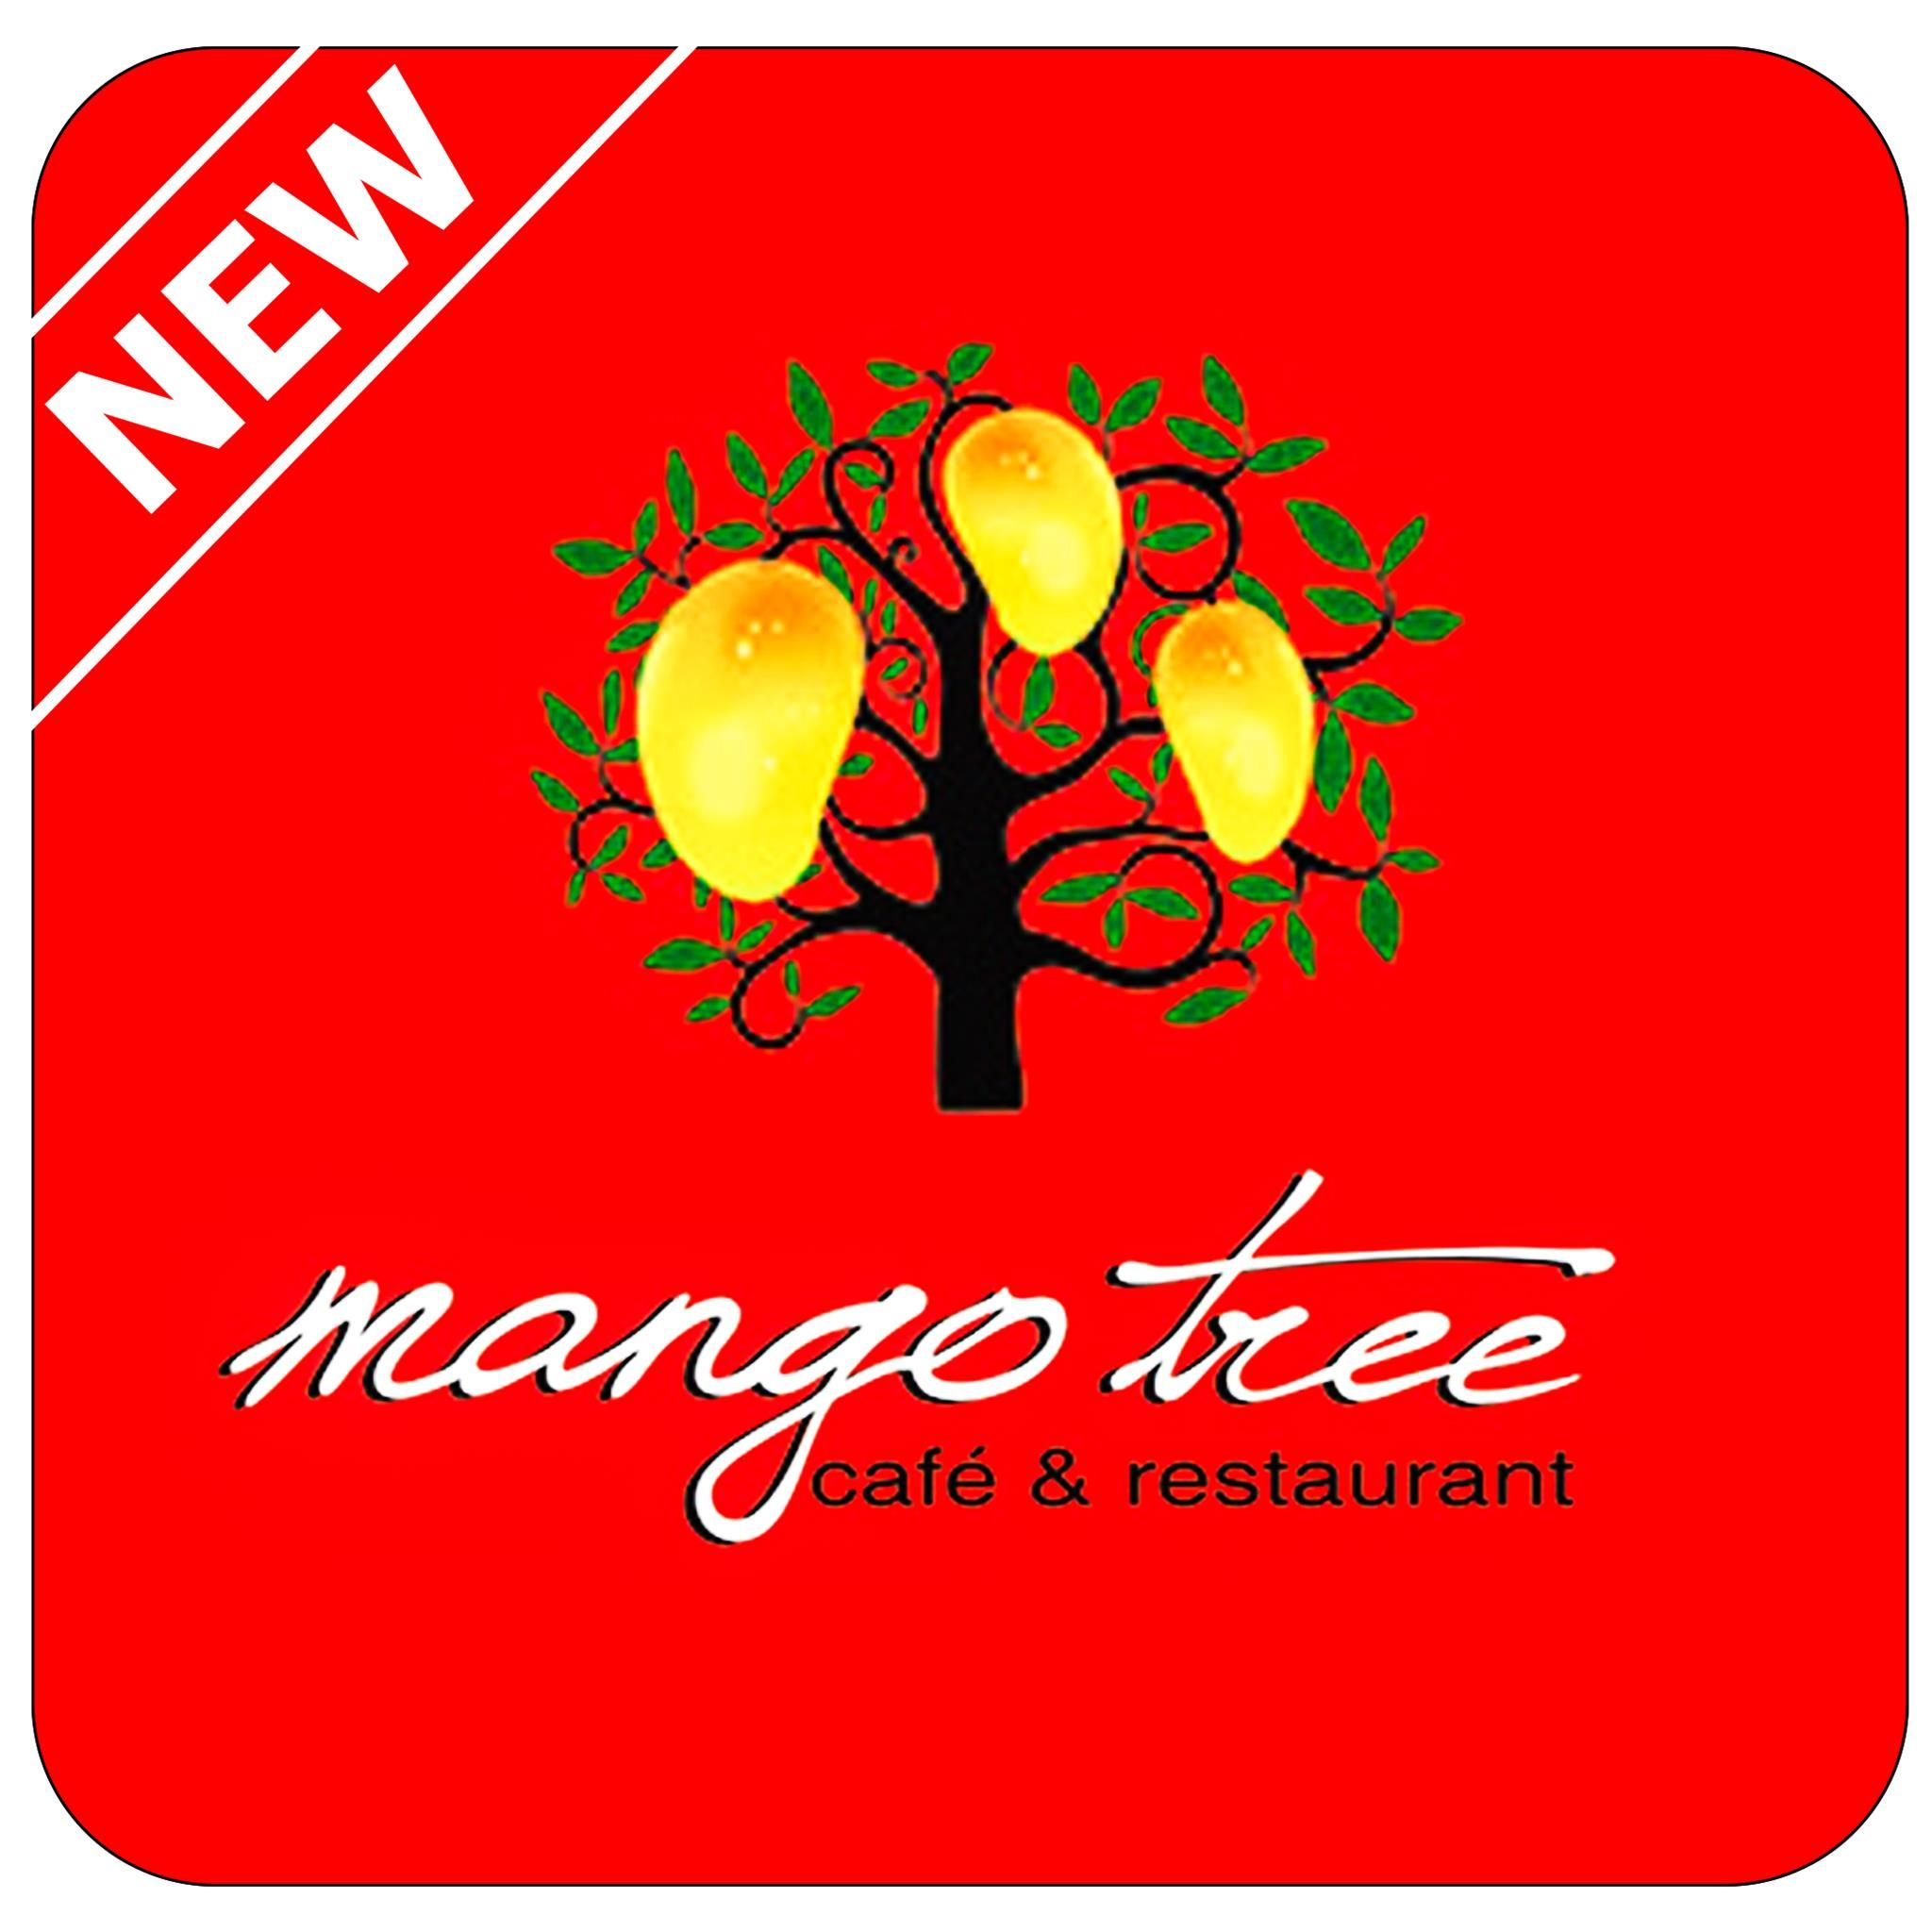 Mango Tree cafe & Restaurant Annandale